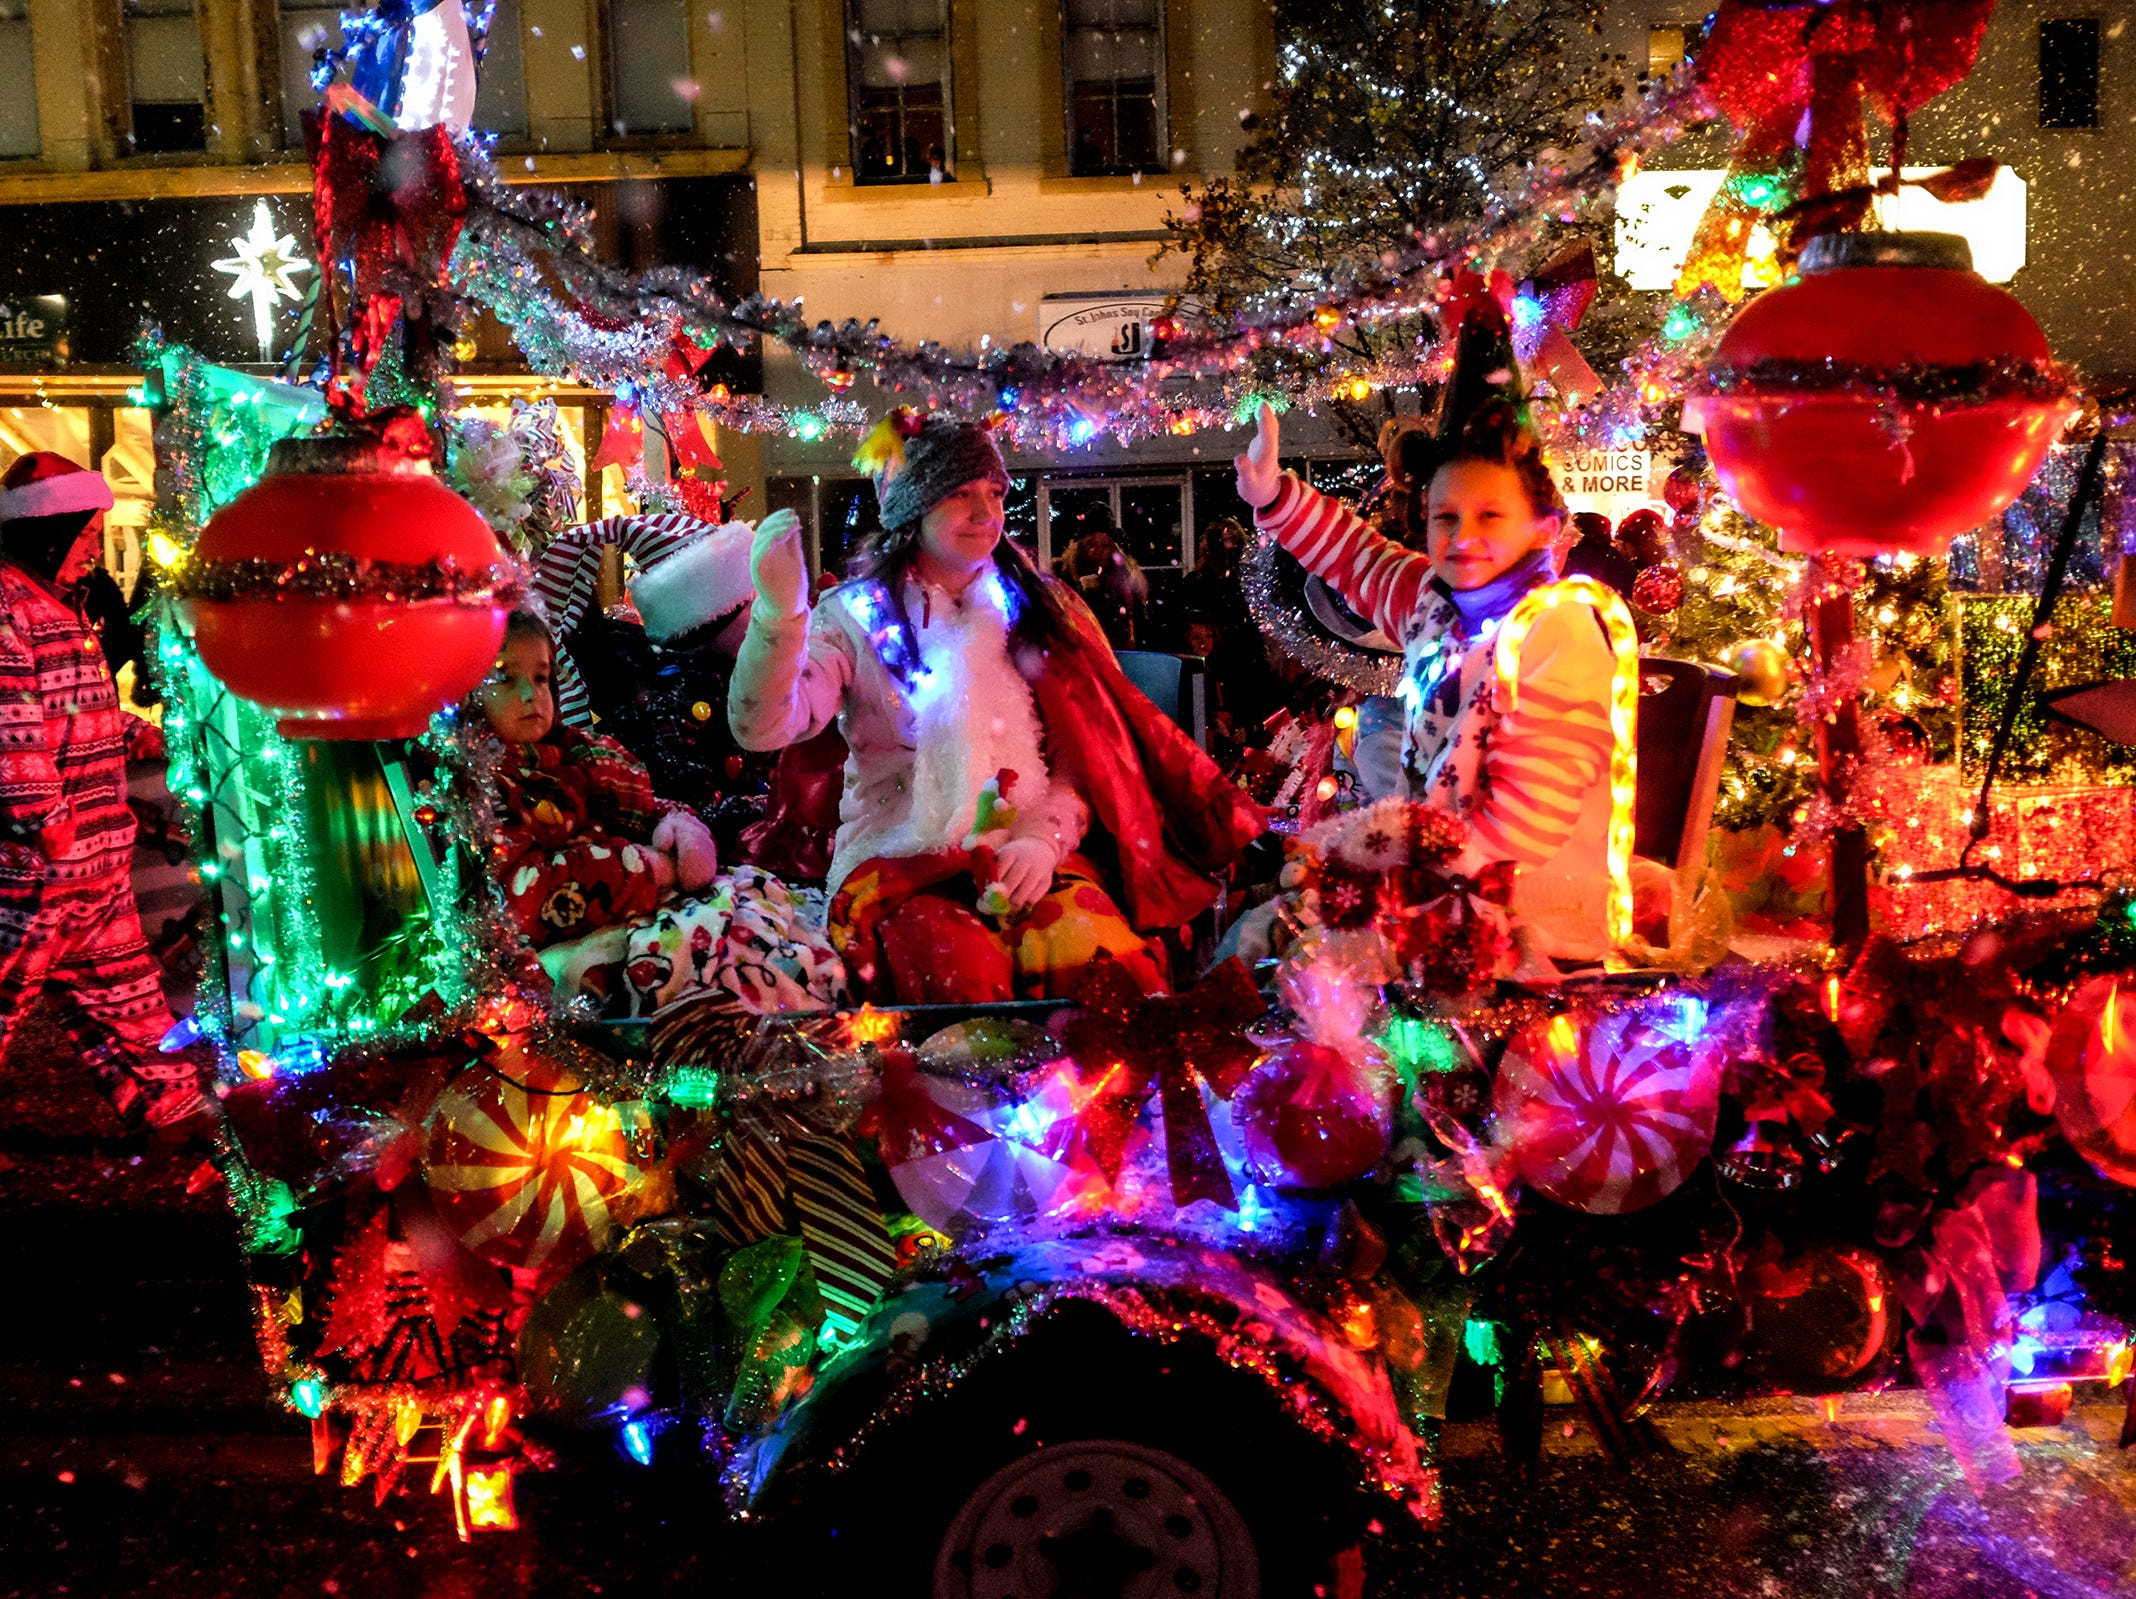 The Annual Festival of Lights and Santa Parade is full of floats with decorations and lights Friday, Dec, 7, 2018.